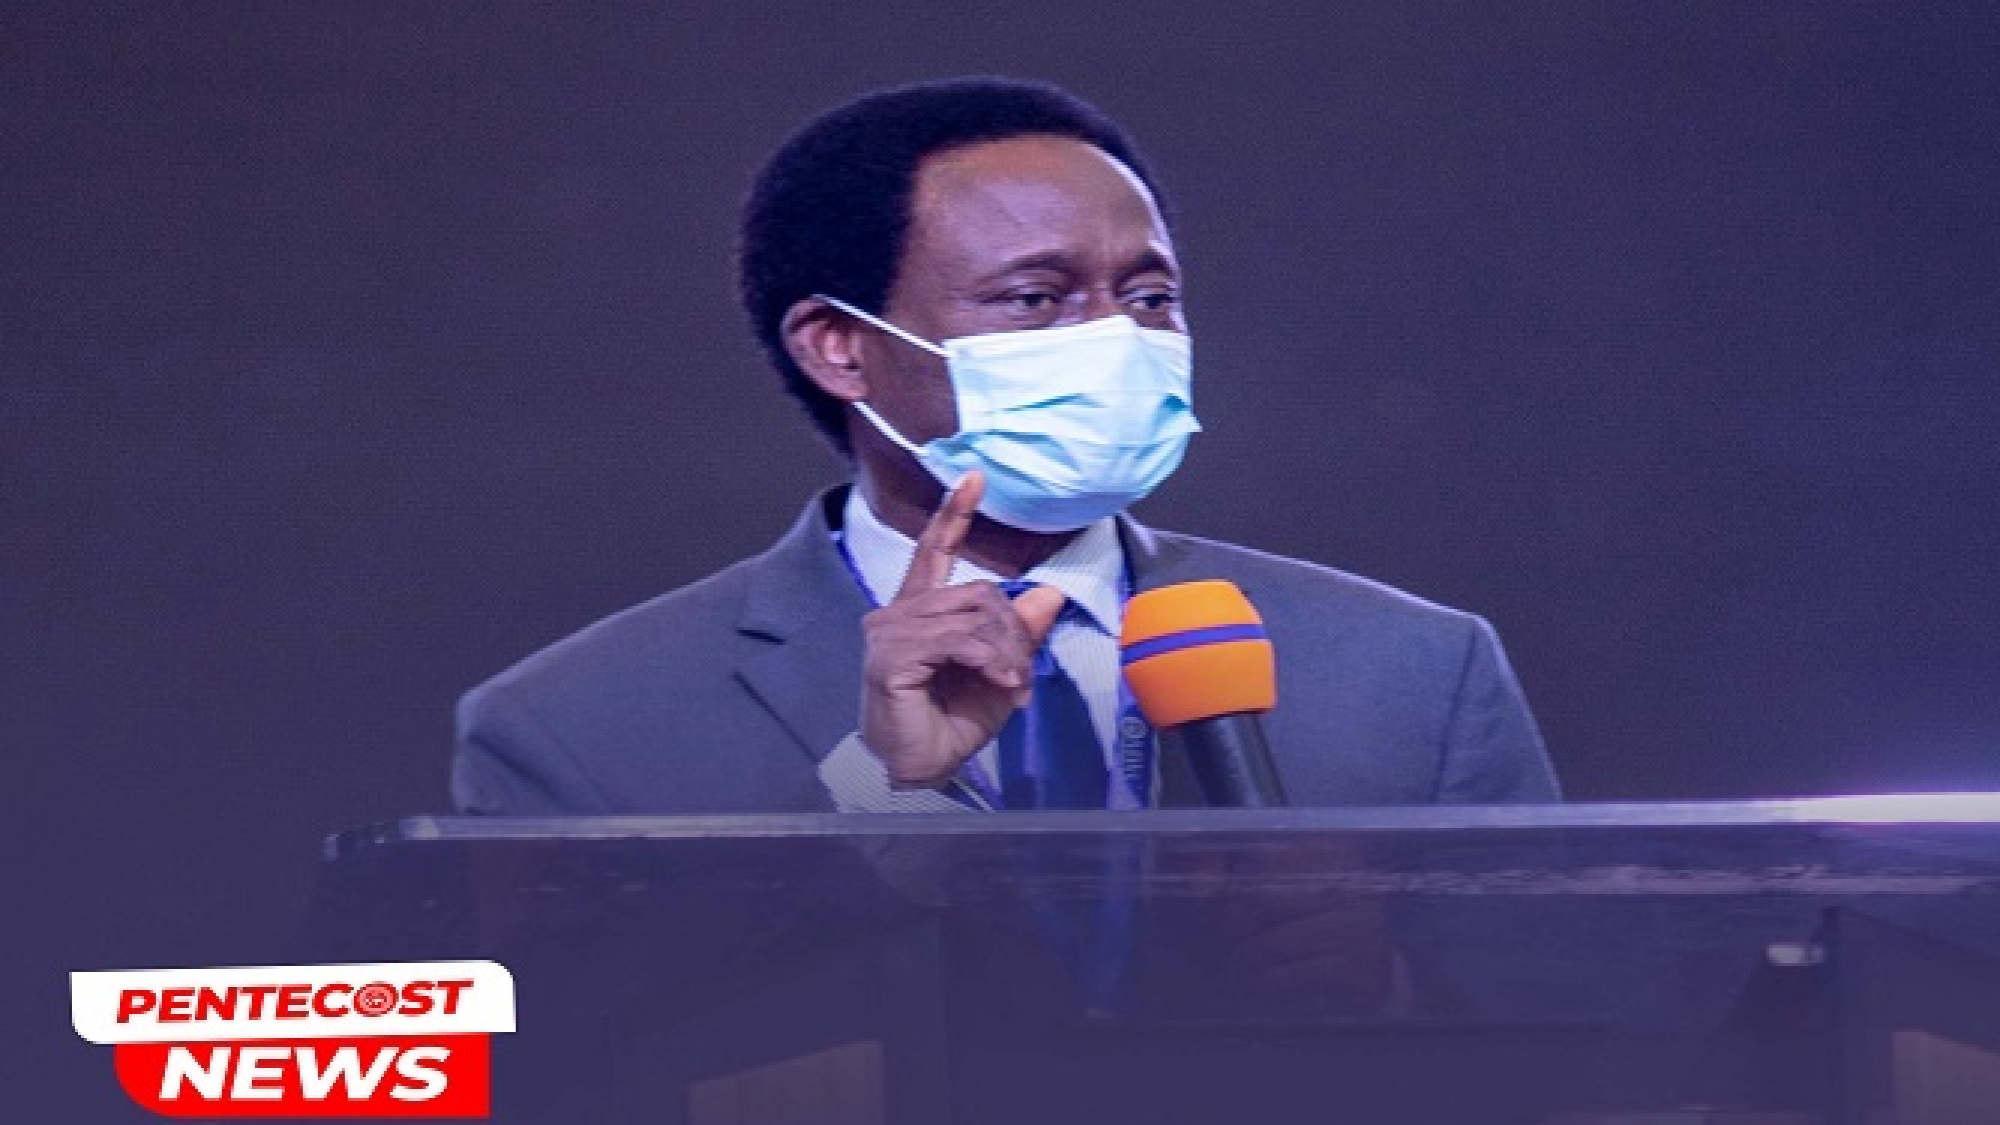 Revival Emanates From God – Apostle Prof Opoku Onyinah Asserts (01)